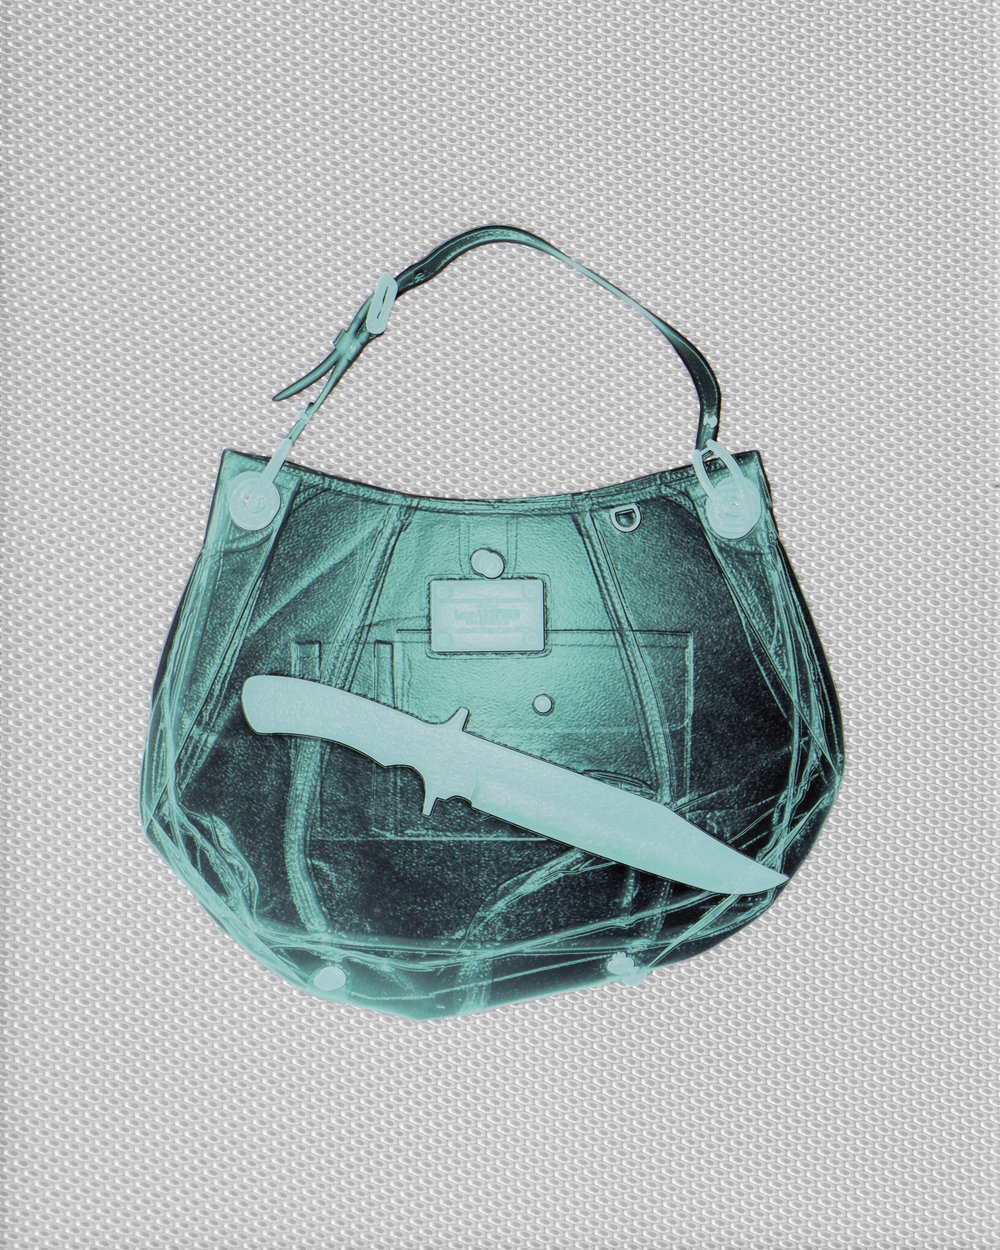 Turquoise Louis Vuitton Handbag With Knife